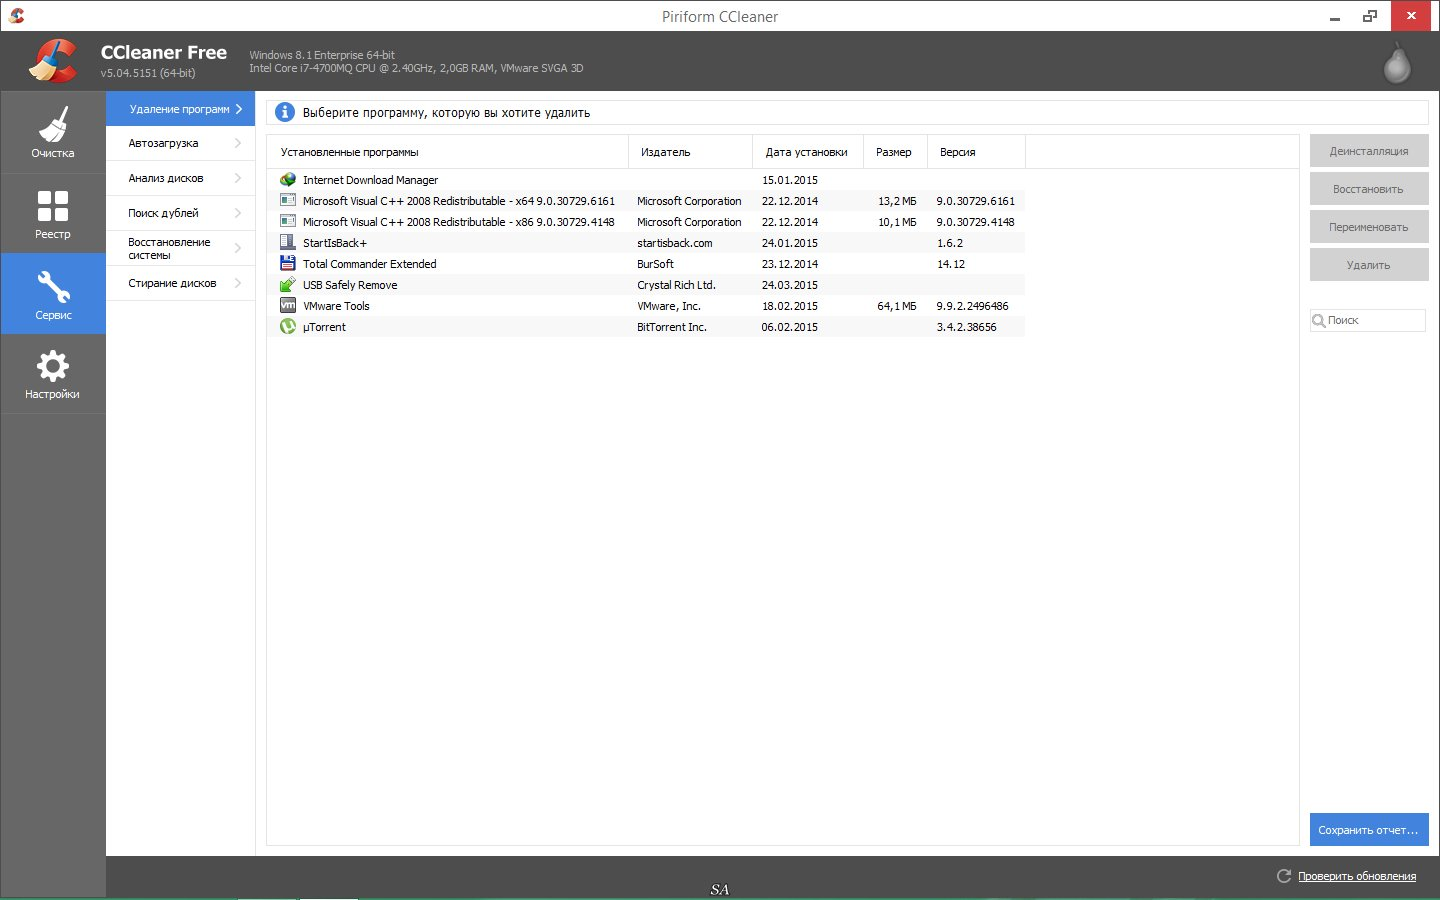 CCleaner 5.04.5151 + Portable [Freeware]